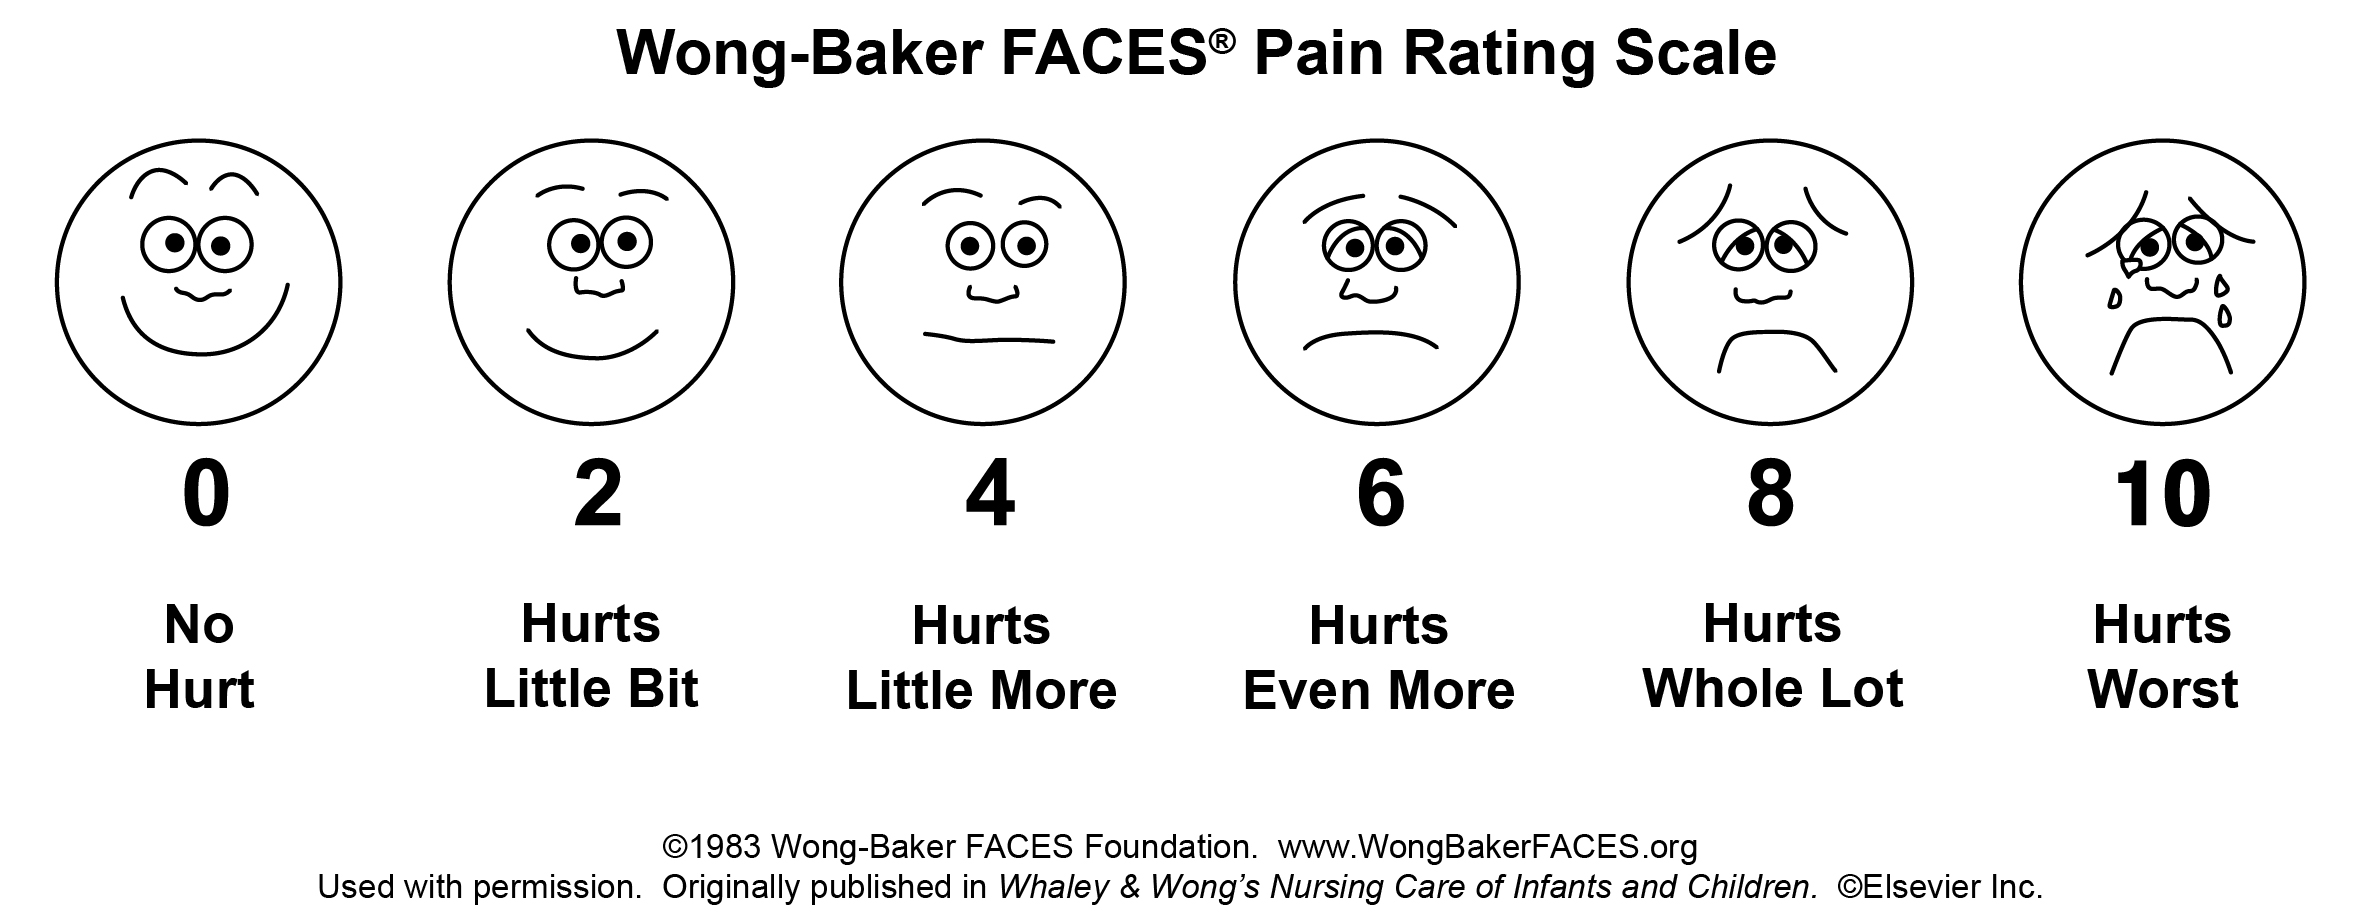 abbey pain scale word document